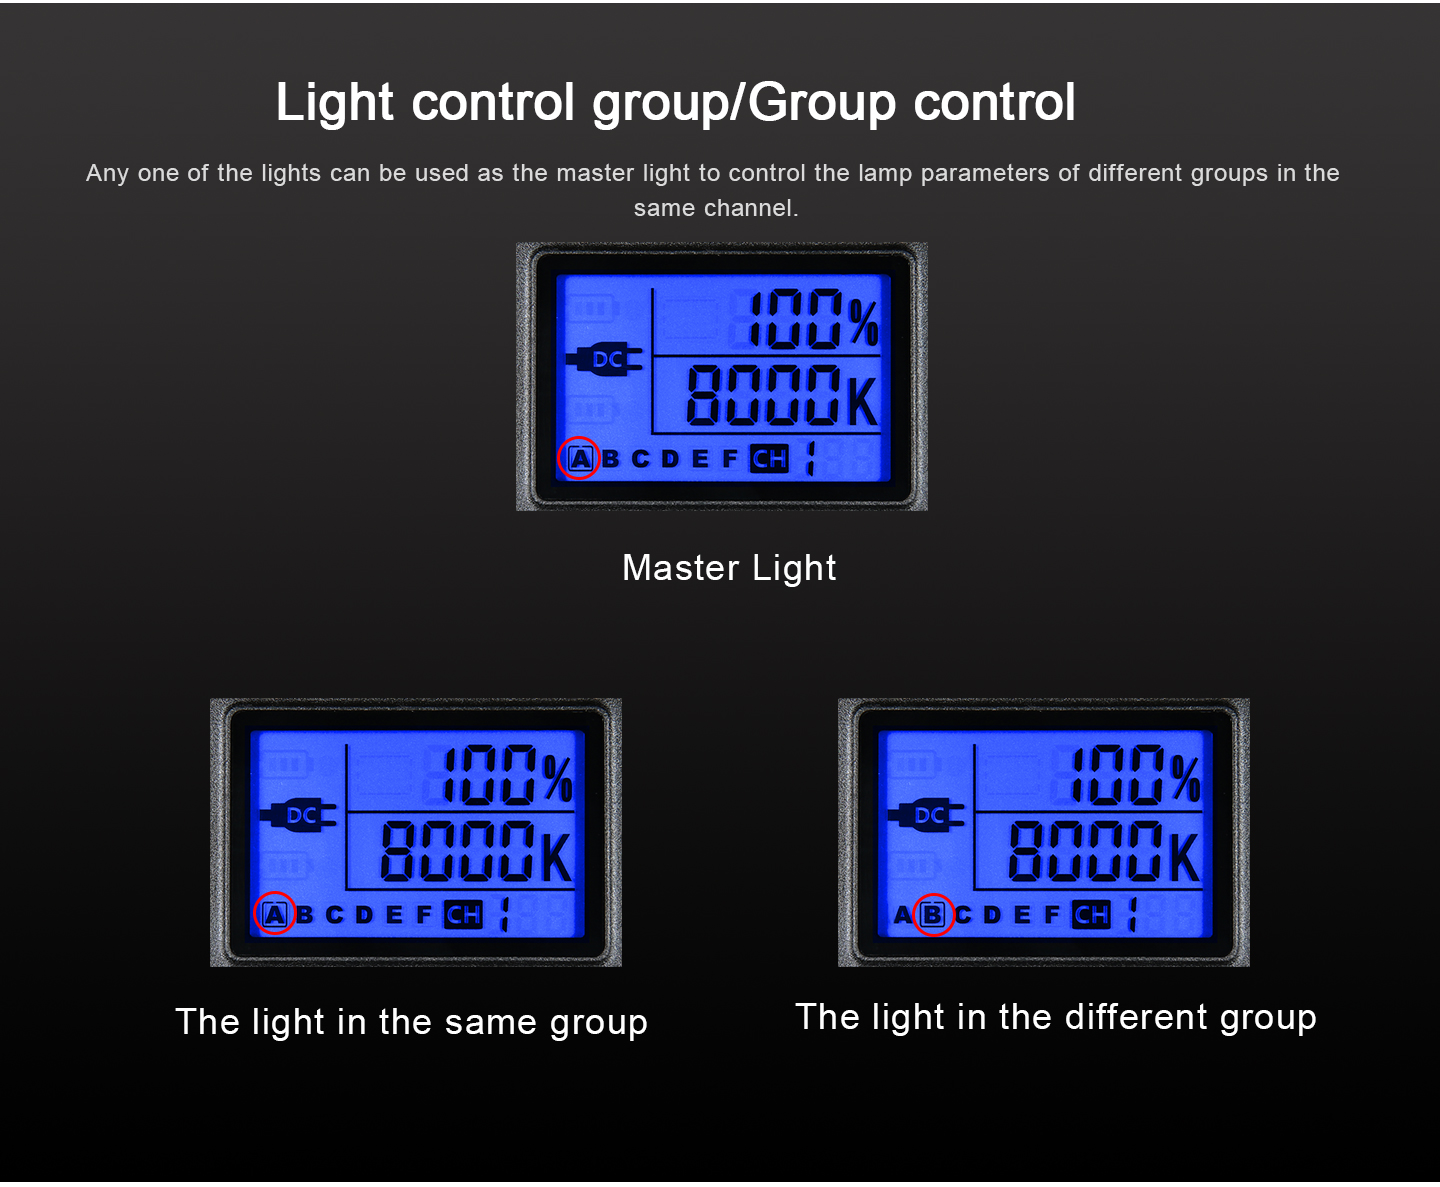 Light control group/Group control